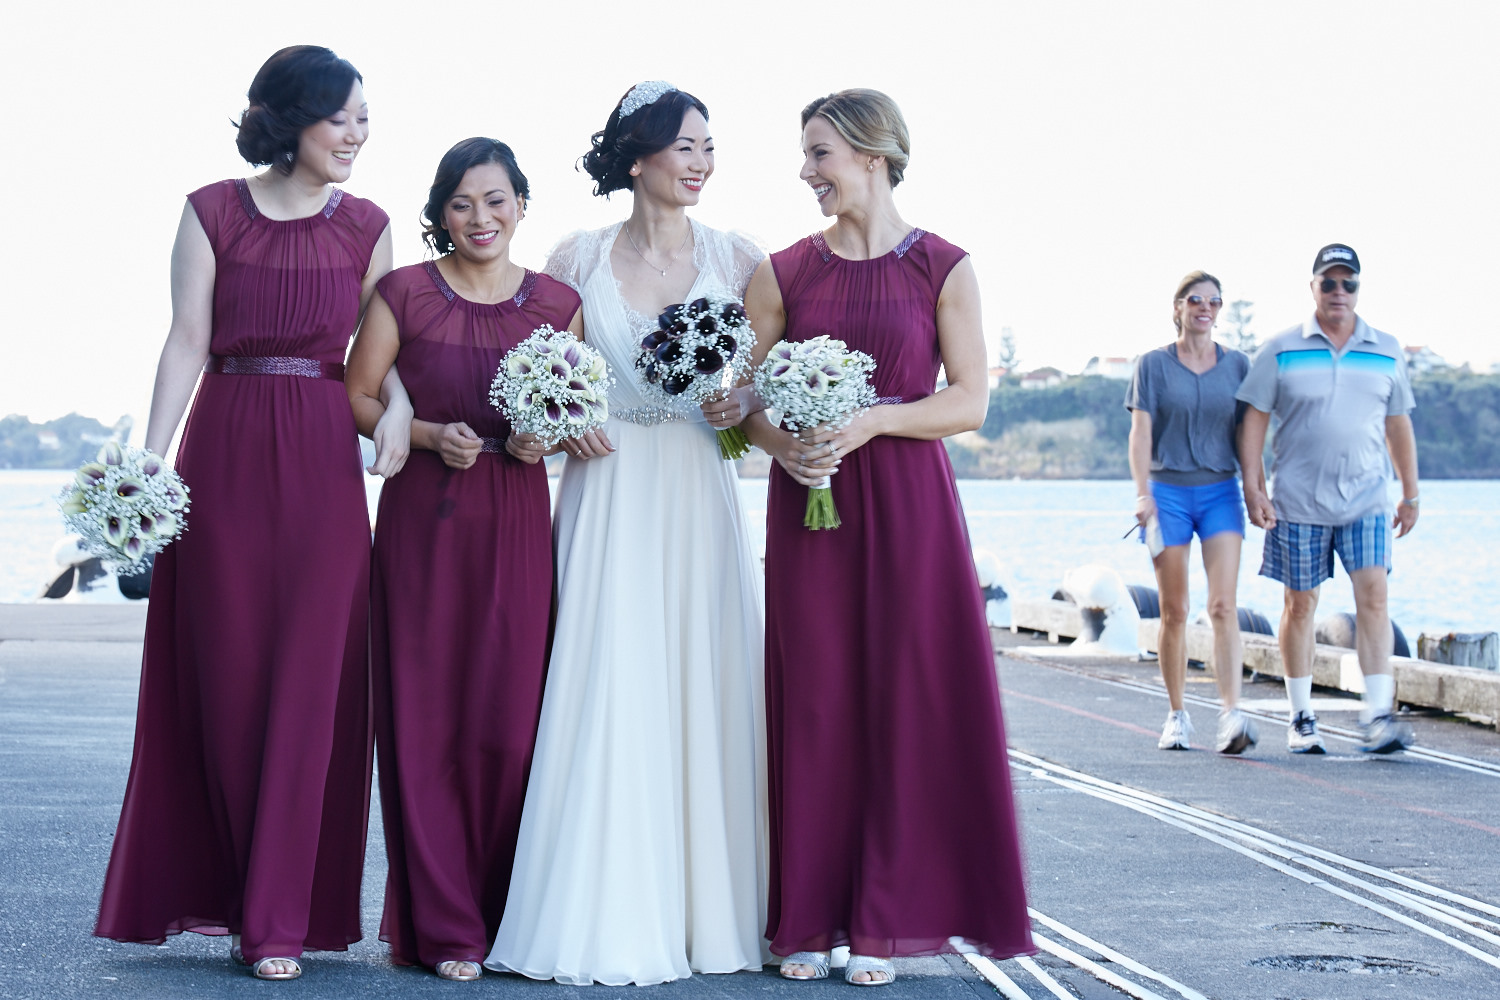 The bride walking with bridesmaids